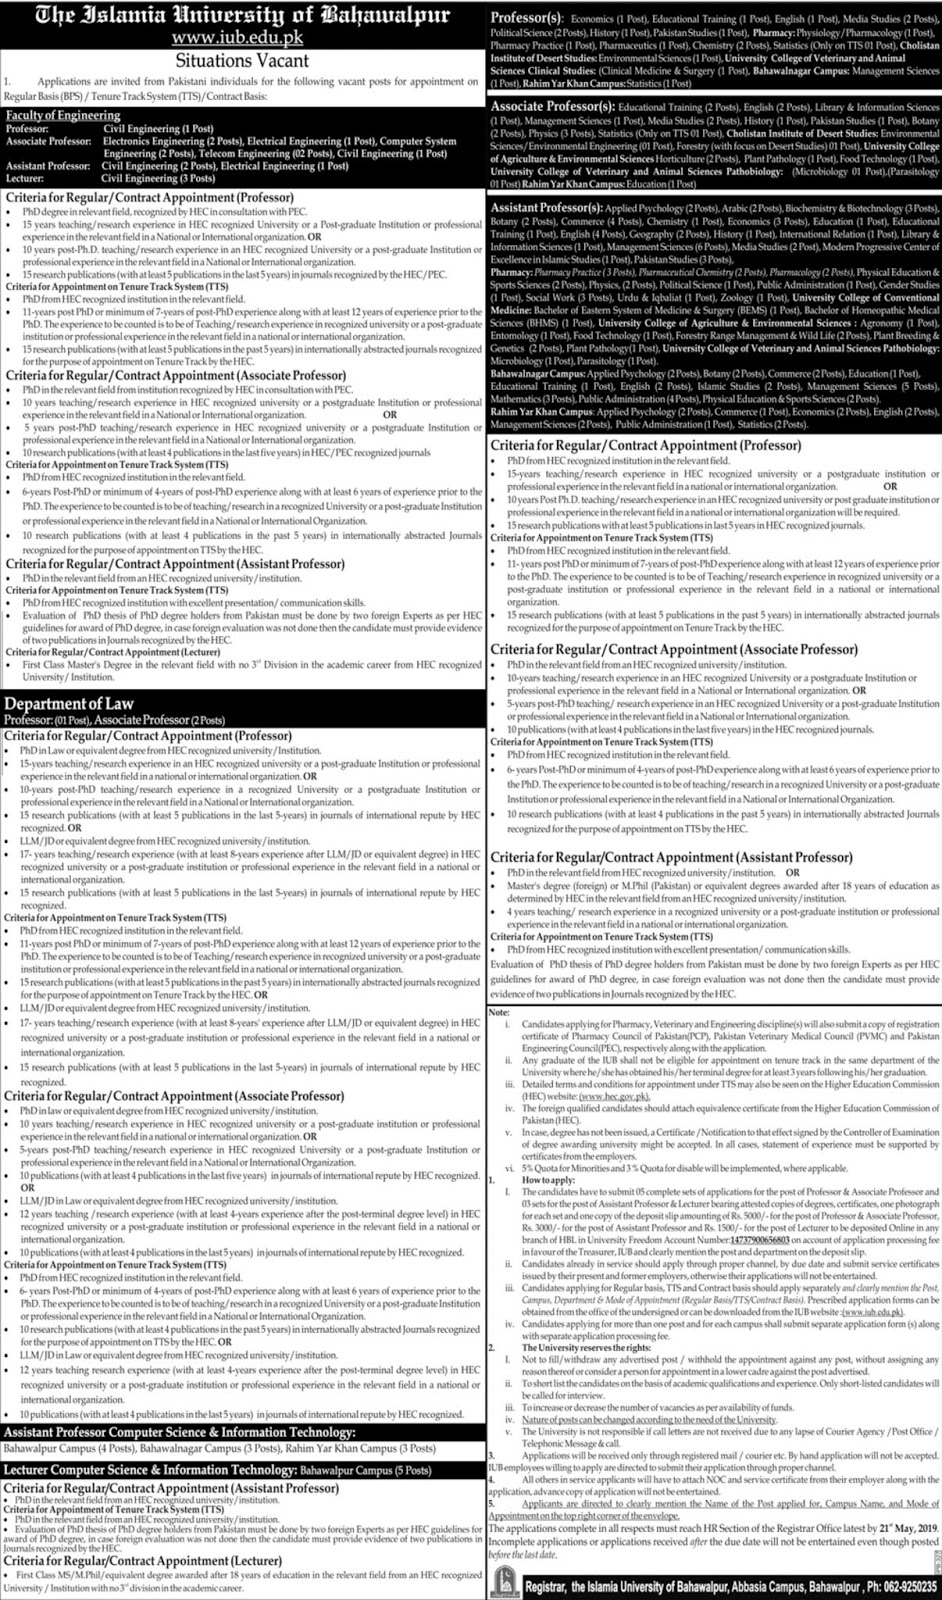 Islamia University of Bahawalpur IUB Jobs 2019 For Professor and Lecturer